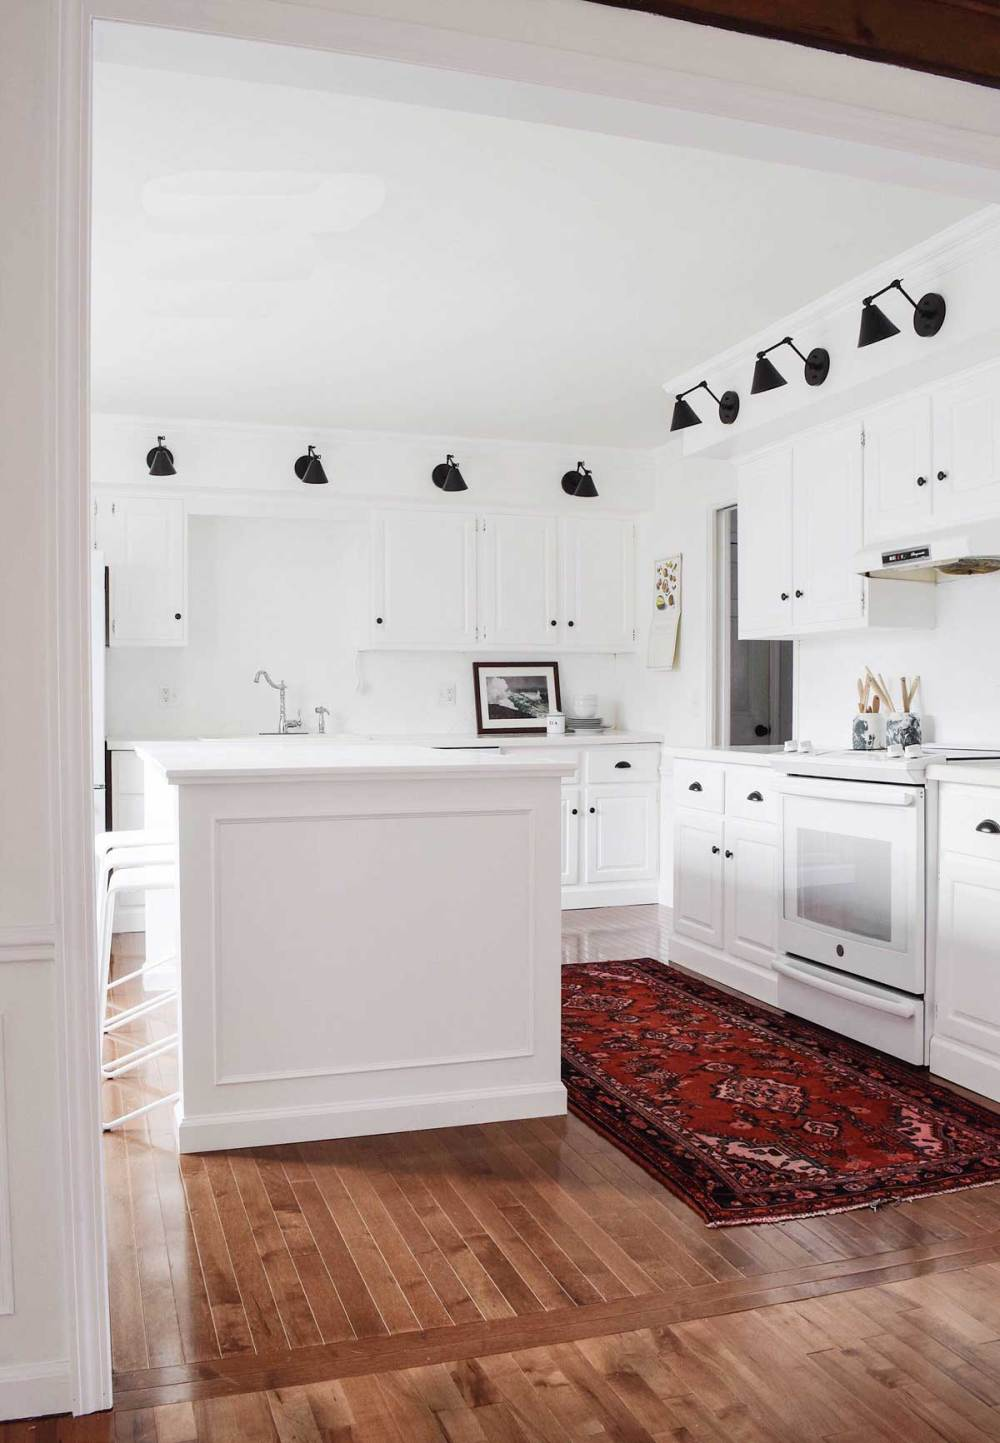 medium resolution of  a former eat in kitchen combo to a regular rounded out full kitchen 2 the big and adequate trash center and 3 the microwave is not on the counter